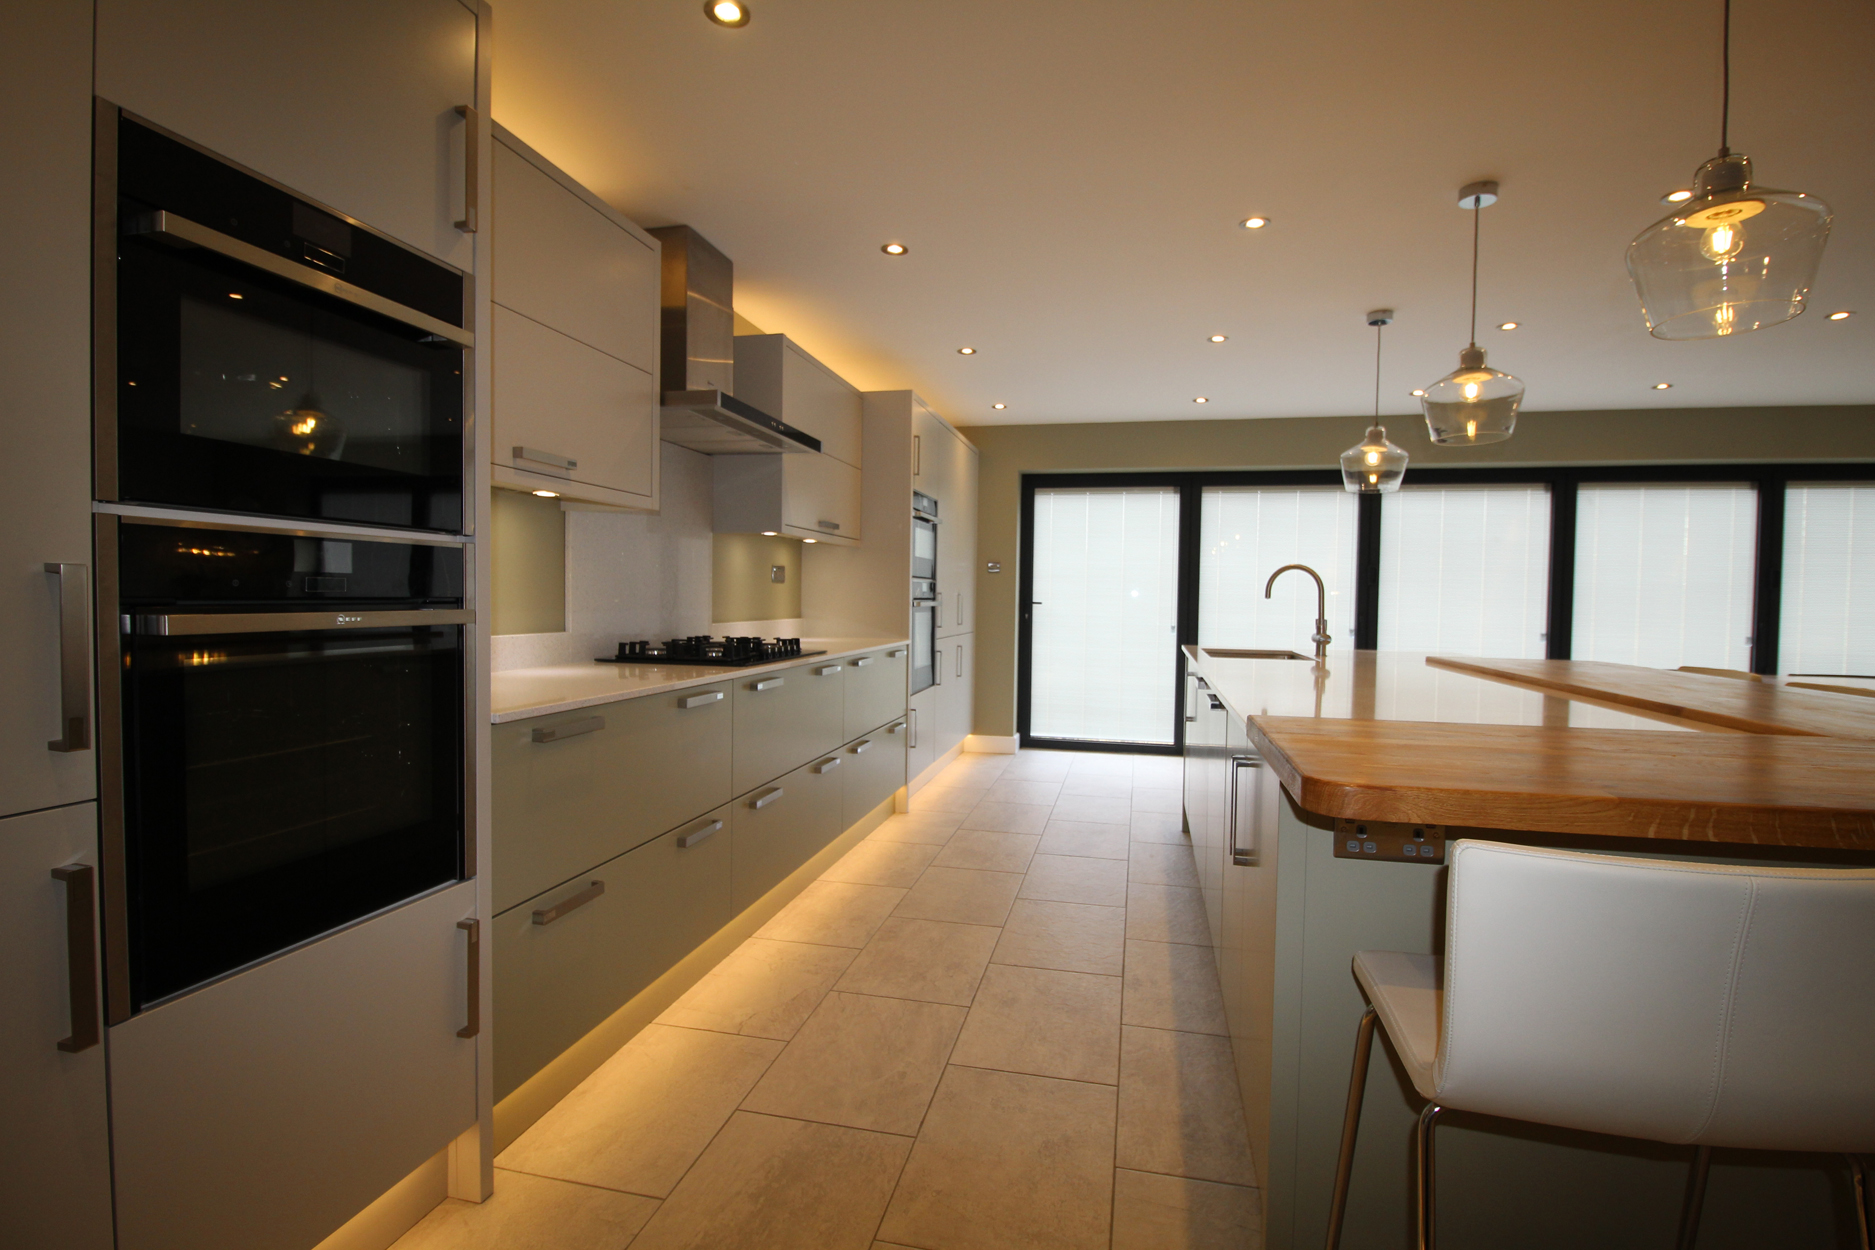 Pocklington kitchens